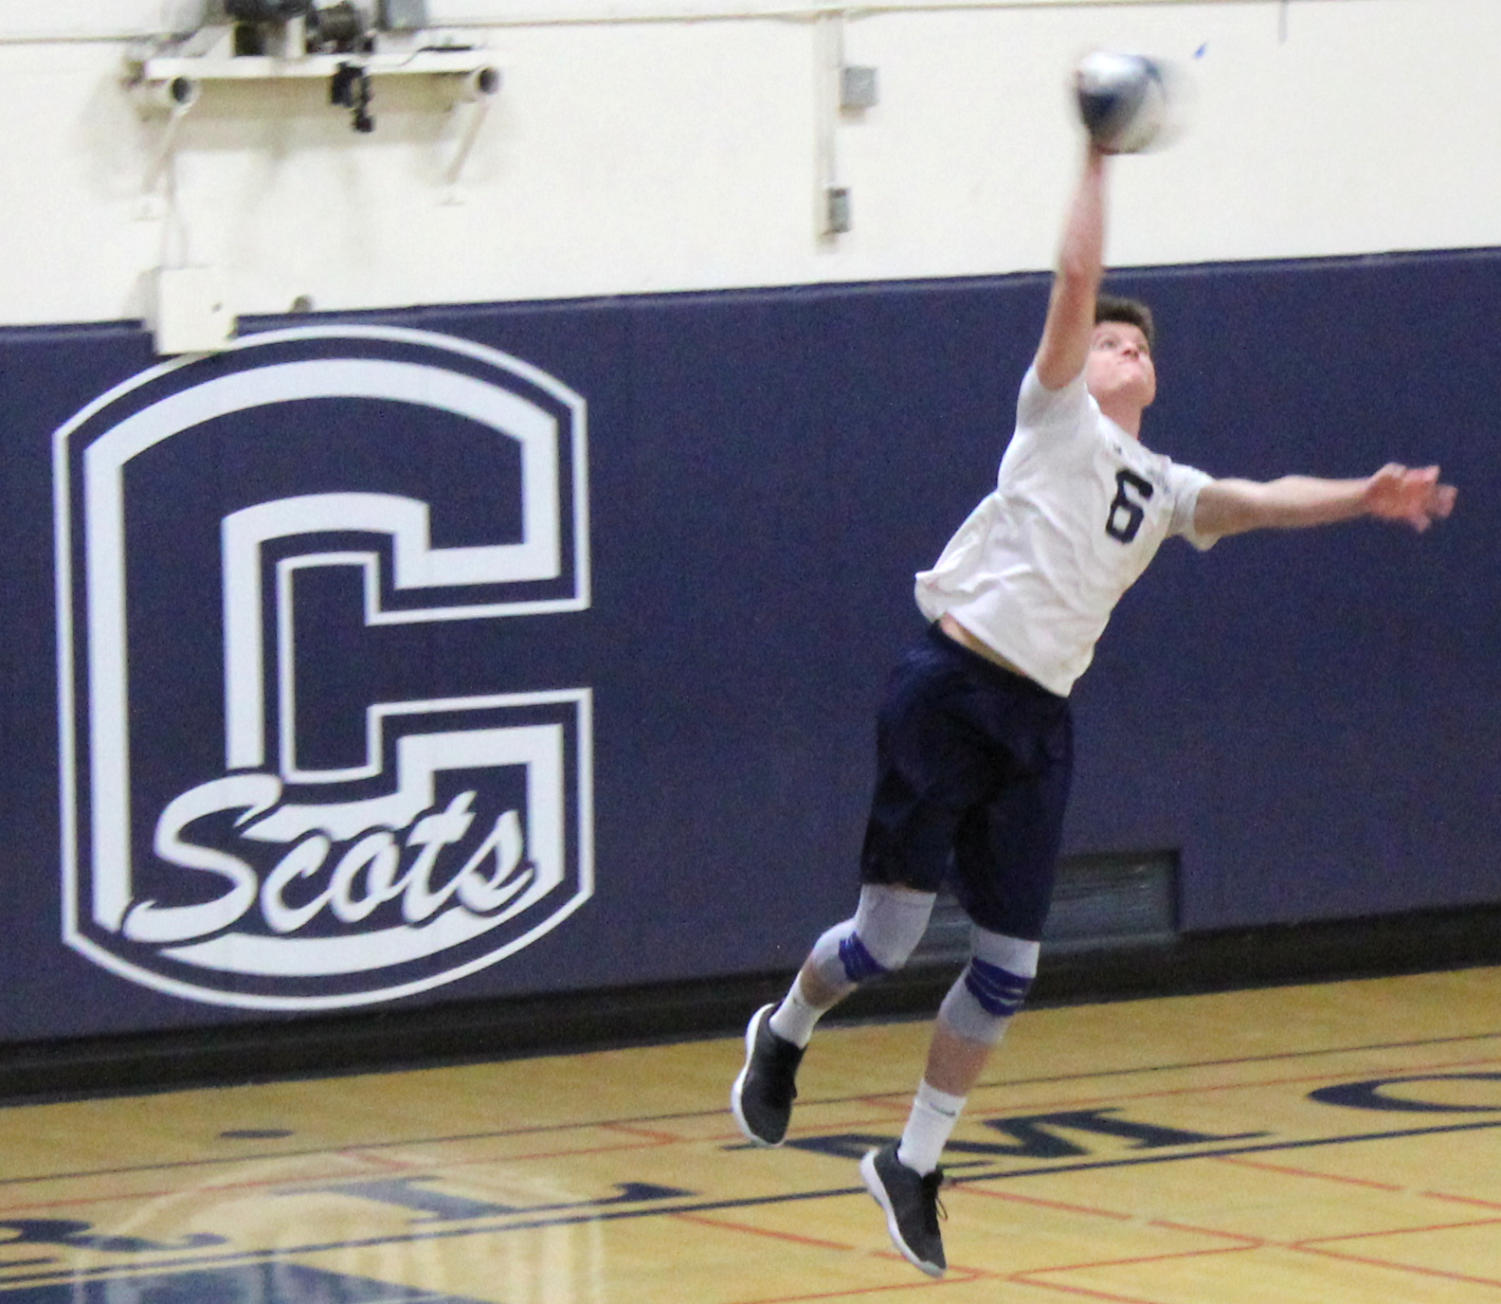 Ethan Mayoss, a junior, serves the ball during the first match